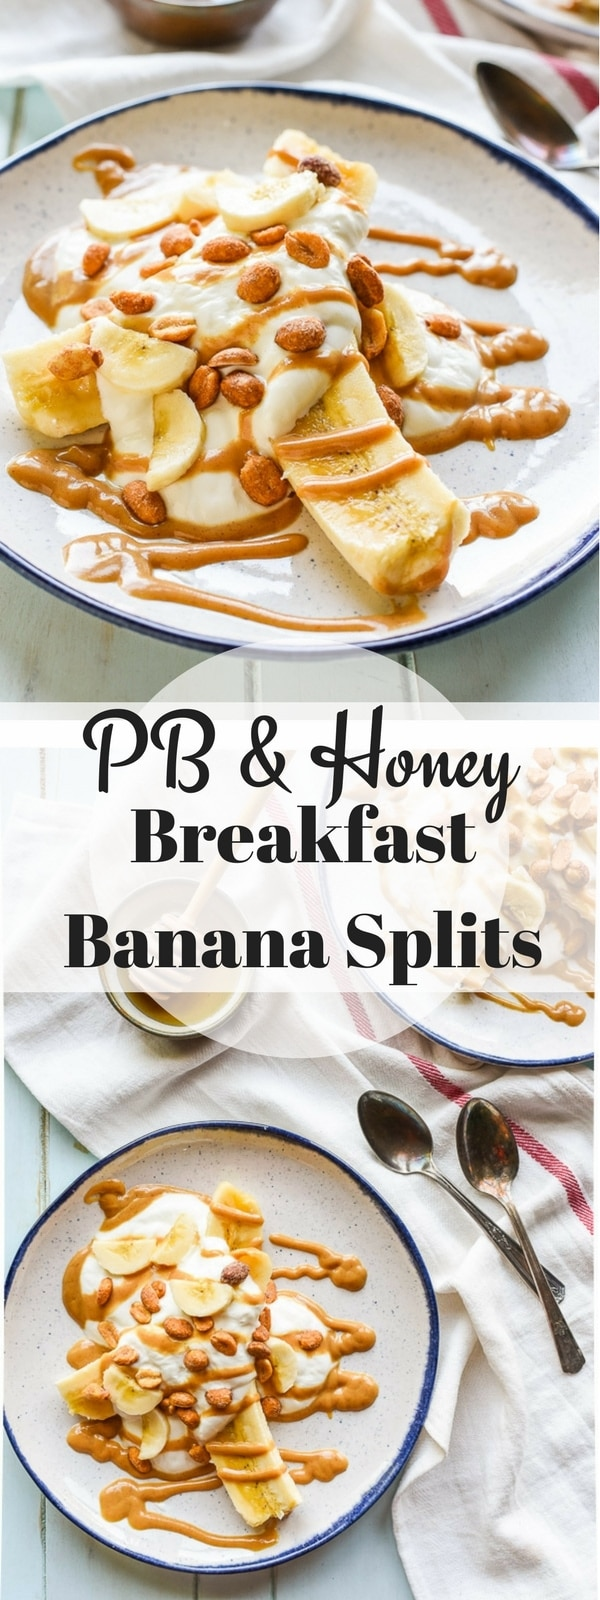 Peanut butter and honey combine to make these dreamy Breakfast Banana Splits, a fun breakfast or snack you can throw together in five minutes!